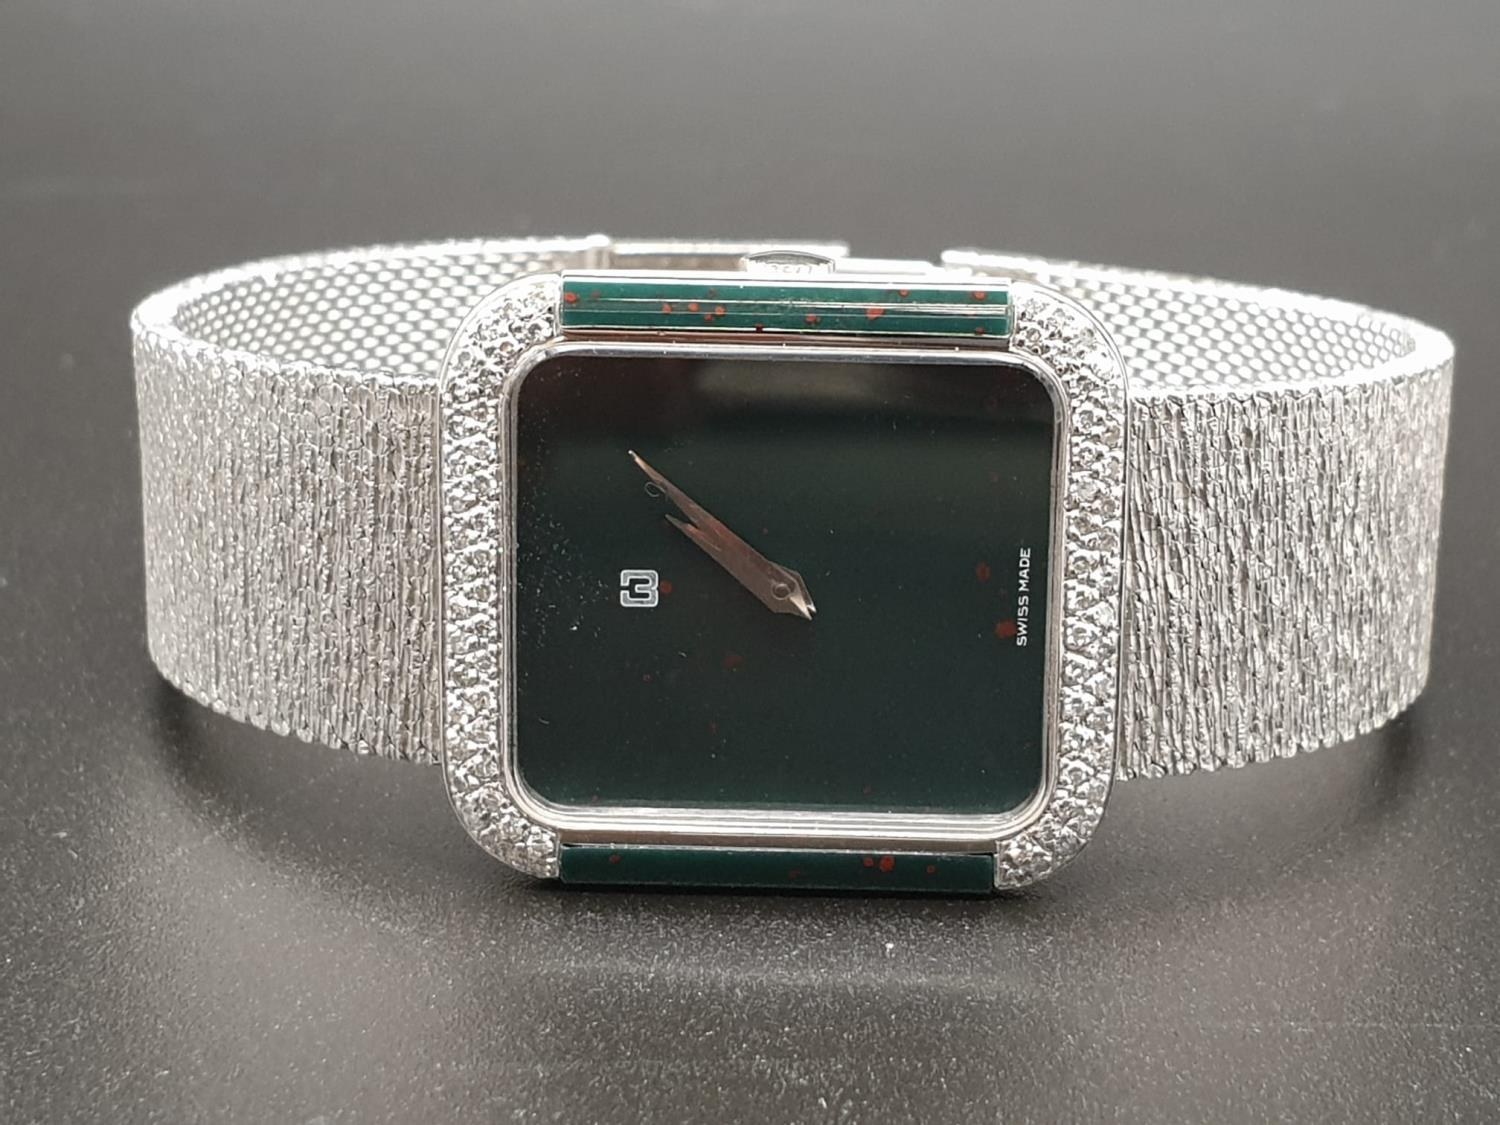 AN 18K WHITE GOLD DRESS WATCH WITH HALF DIAMOND BEZEL AND SOLID GOLD STRAP. 26MM - Image 4 of 12